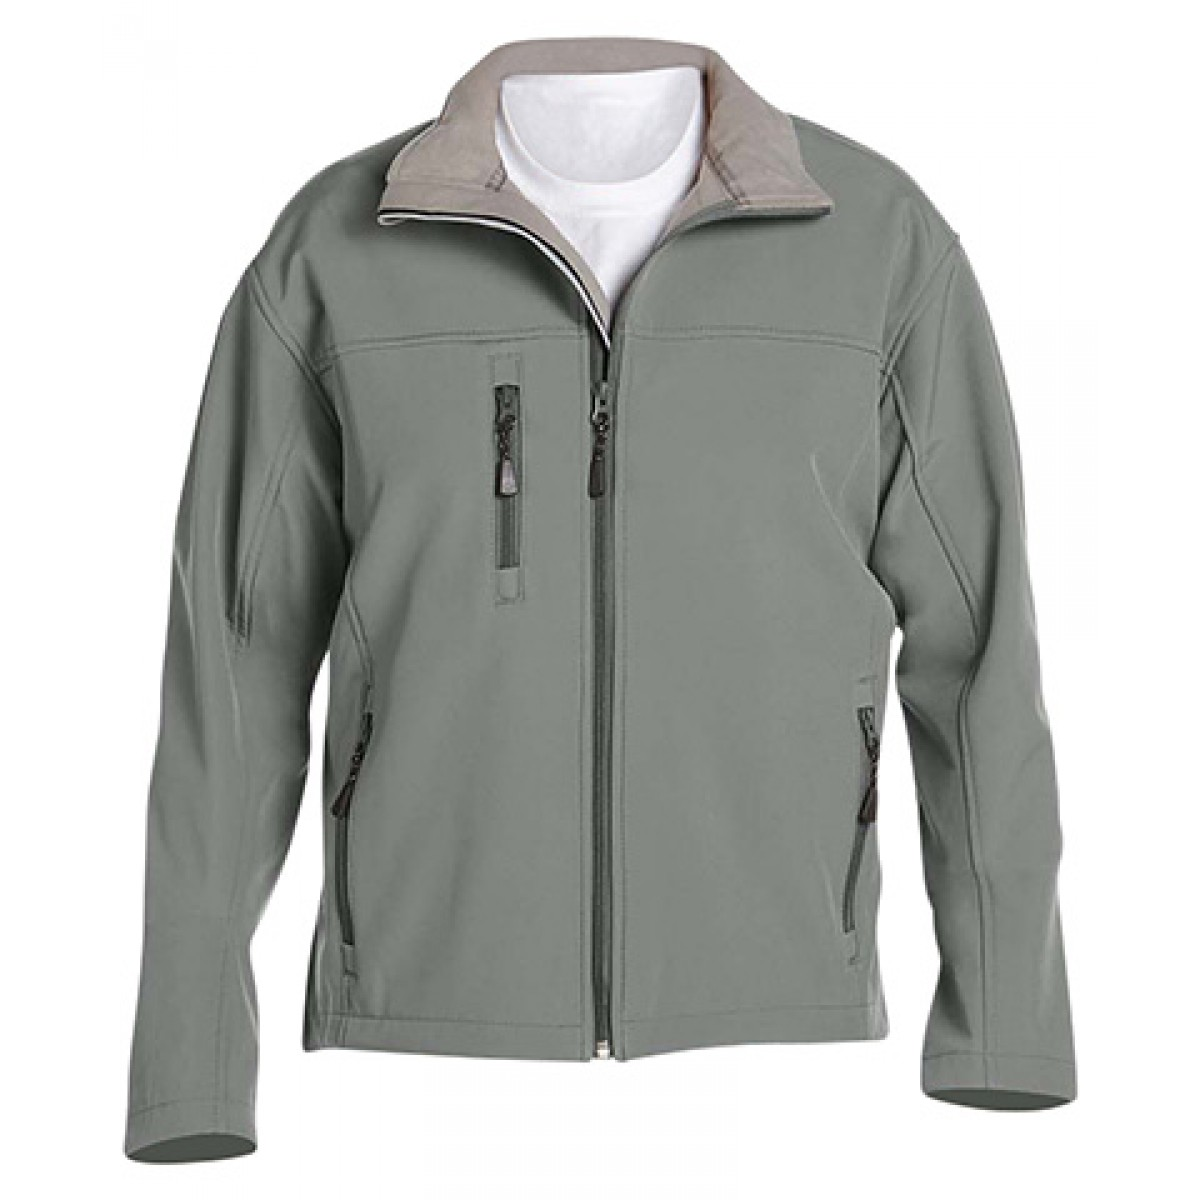 Men's Soft Shell Jacket-Charocal-XL